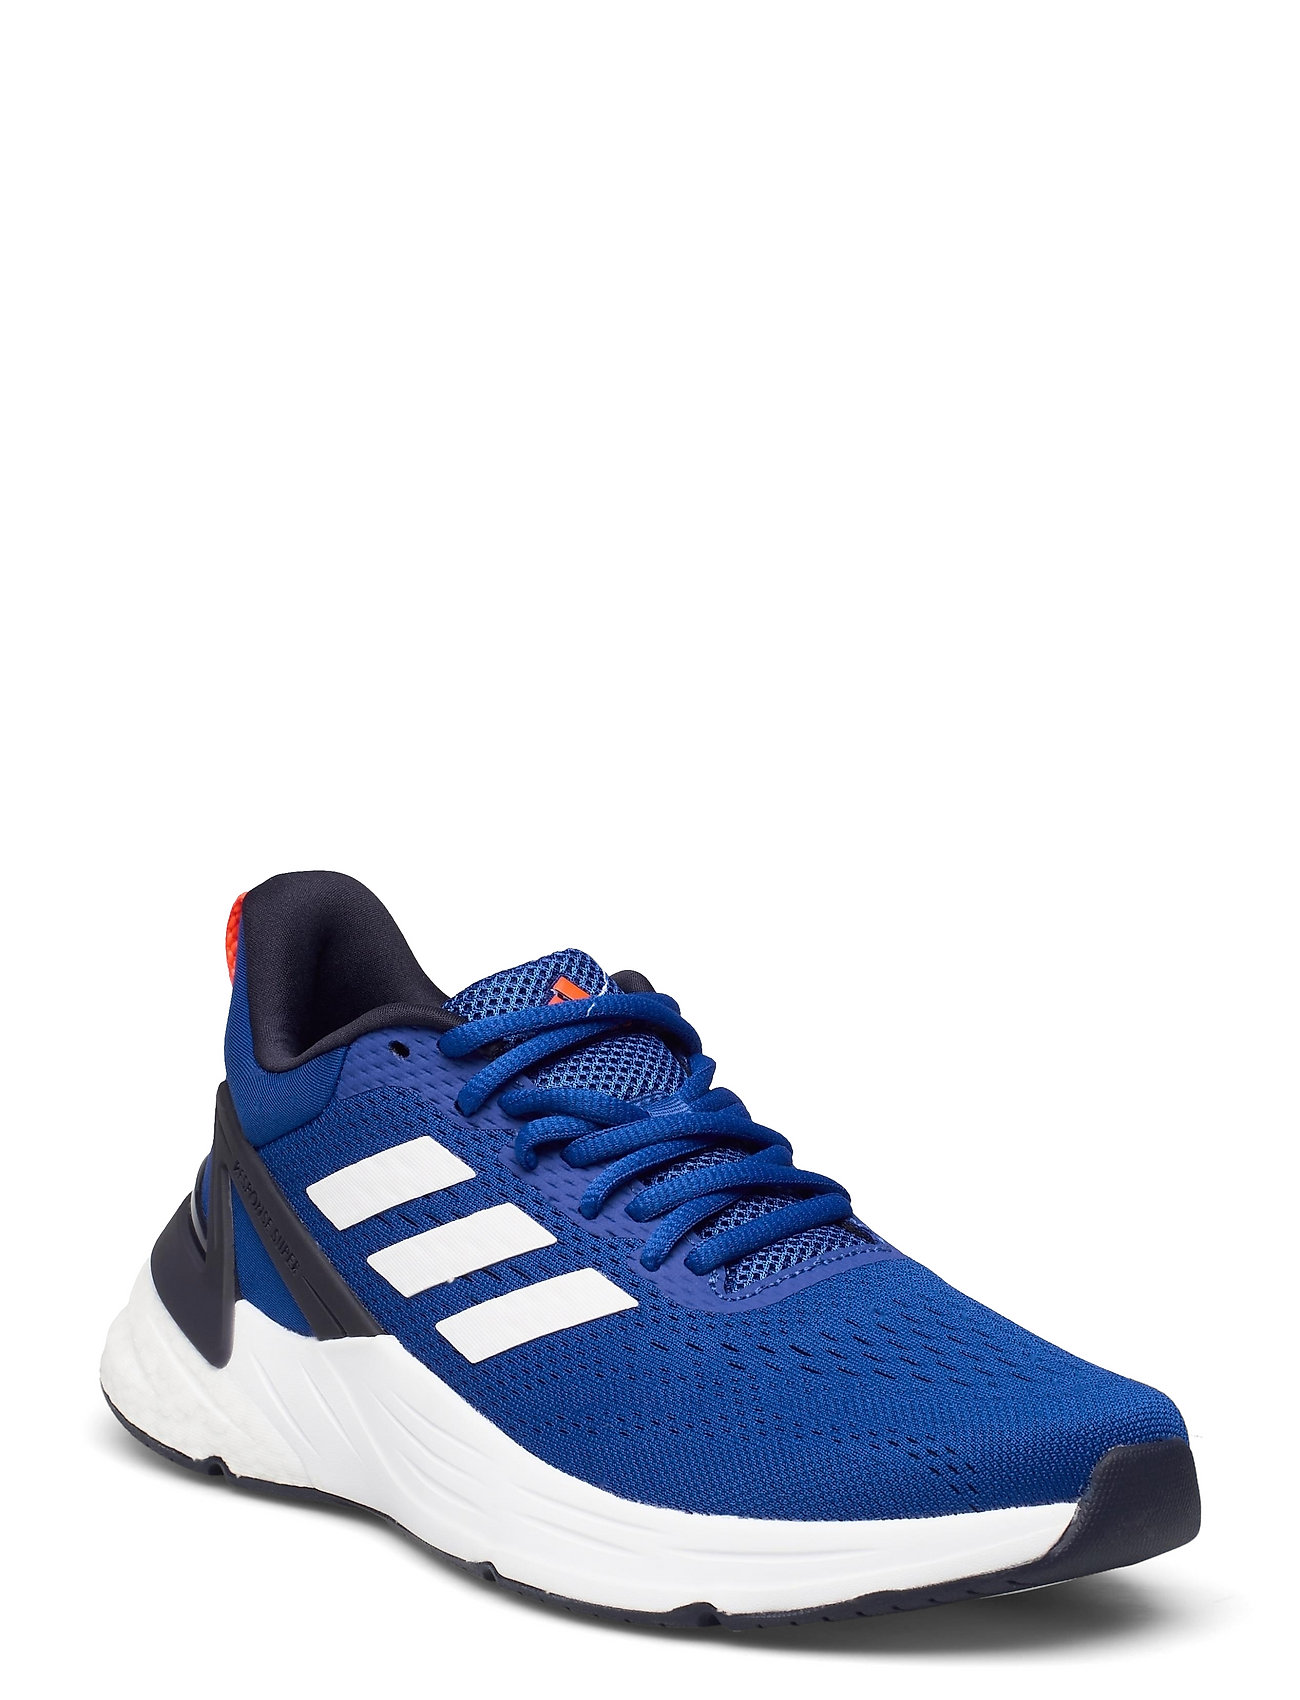 Response Super 2.0 Shoes Sports Shoes Running/training Shoes Blå Adidas Performance